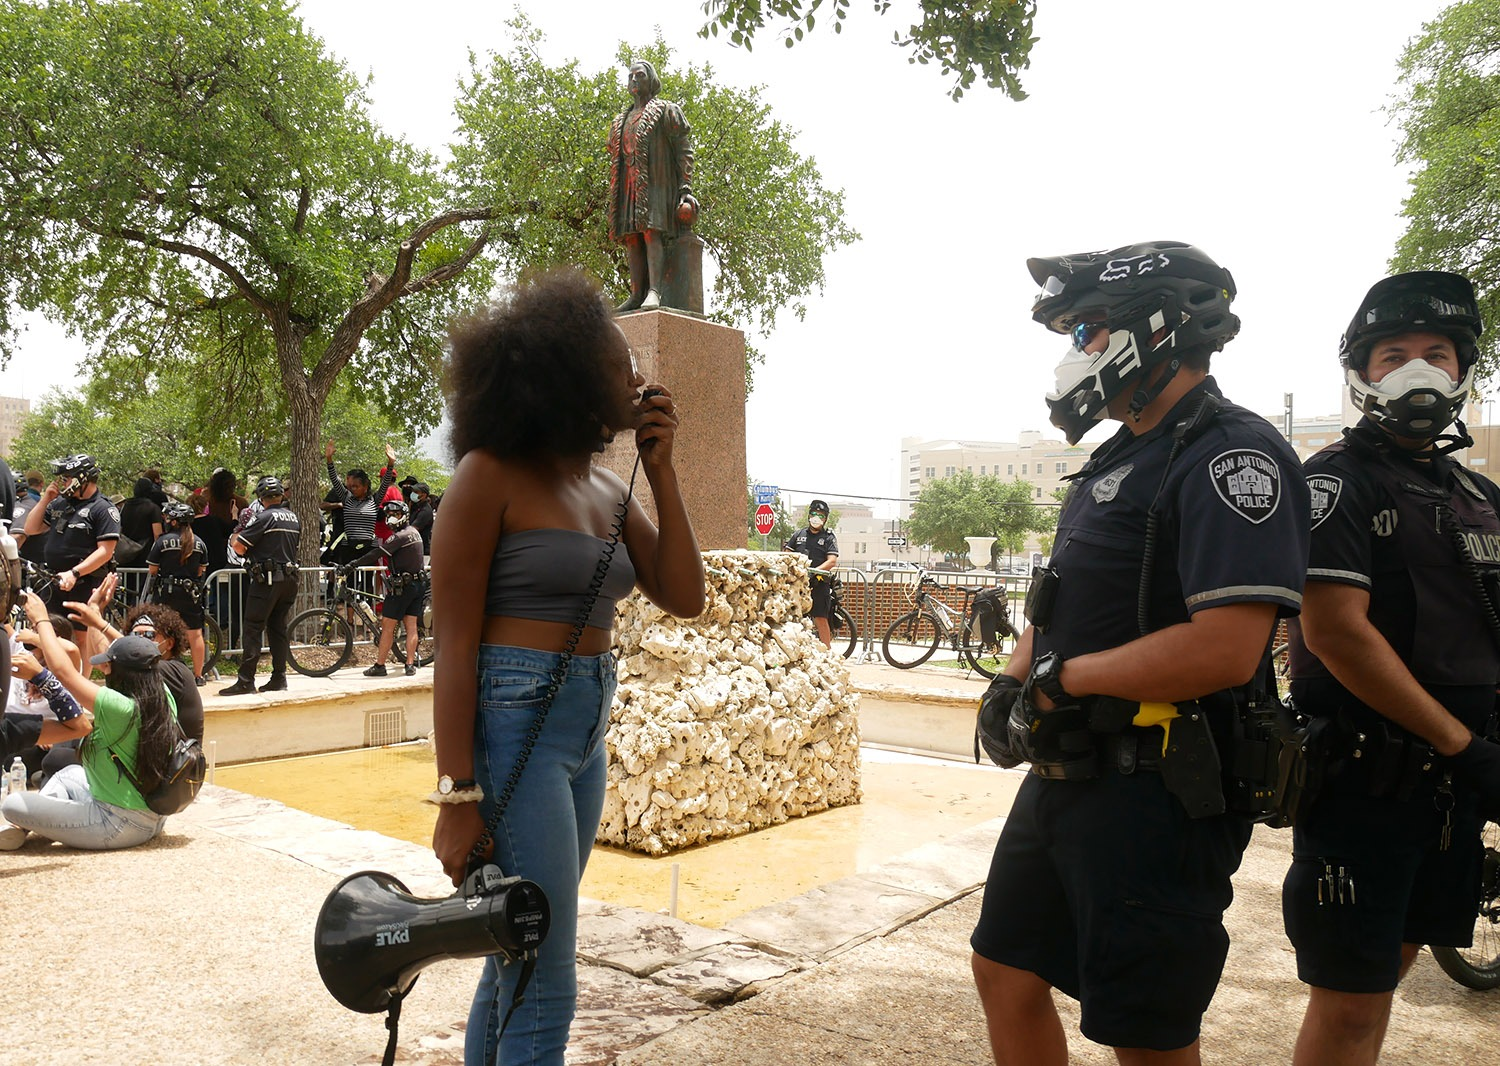 Kimiya Factory, 21, an organizer for the local Black Lives Matter movement, confronts police officers during a protest for the removal of the Columbus statue Saturday, June 27, 2020, at Columbus Park, 200 Columbus St. Photo by Michelle Delrey | Heron contributor